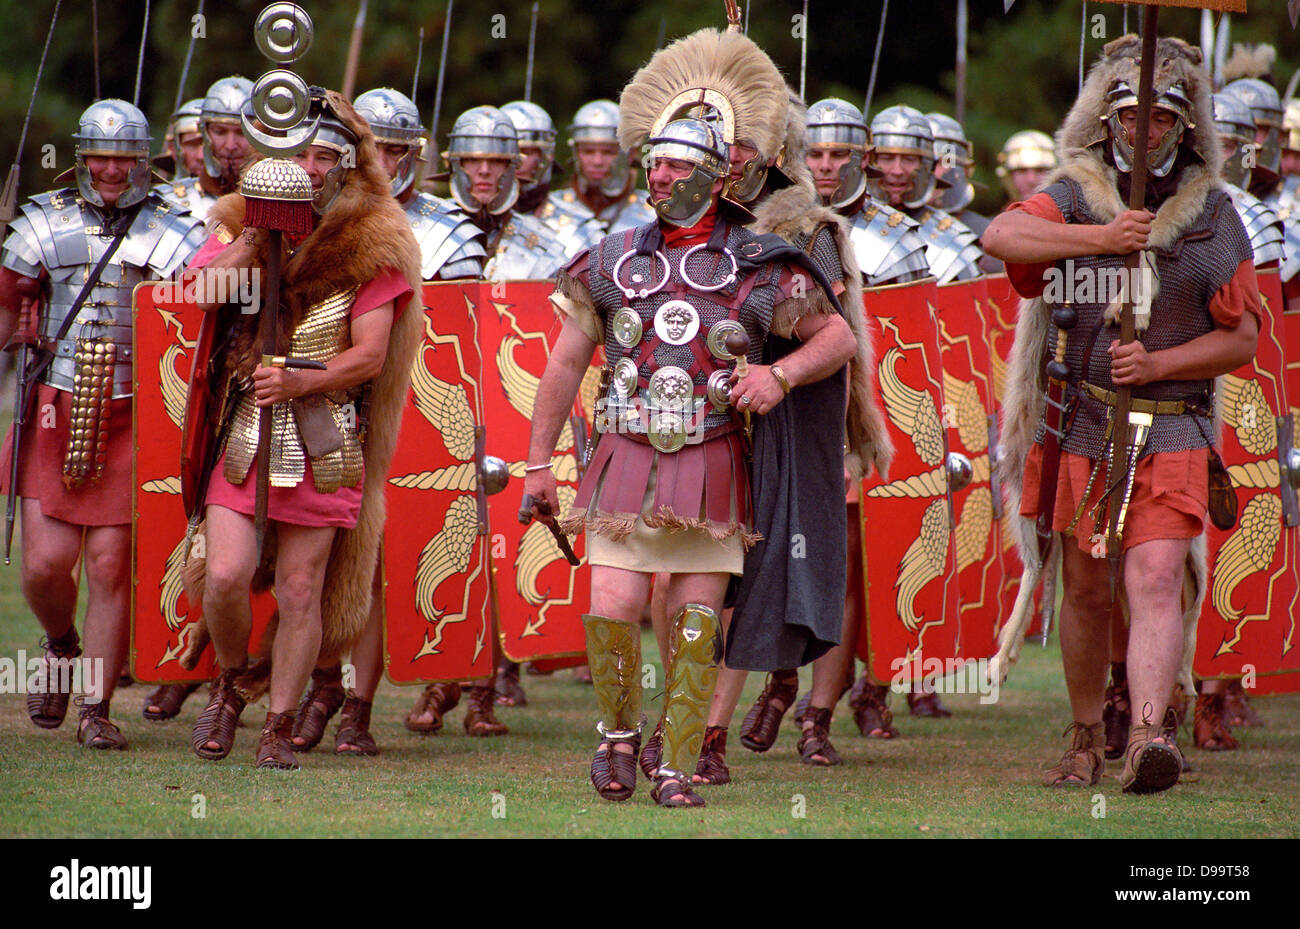 Roman legionaires at a re-enactment in Devon, UK. - Stock Image